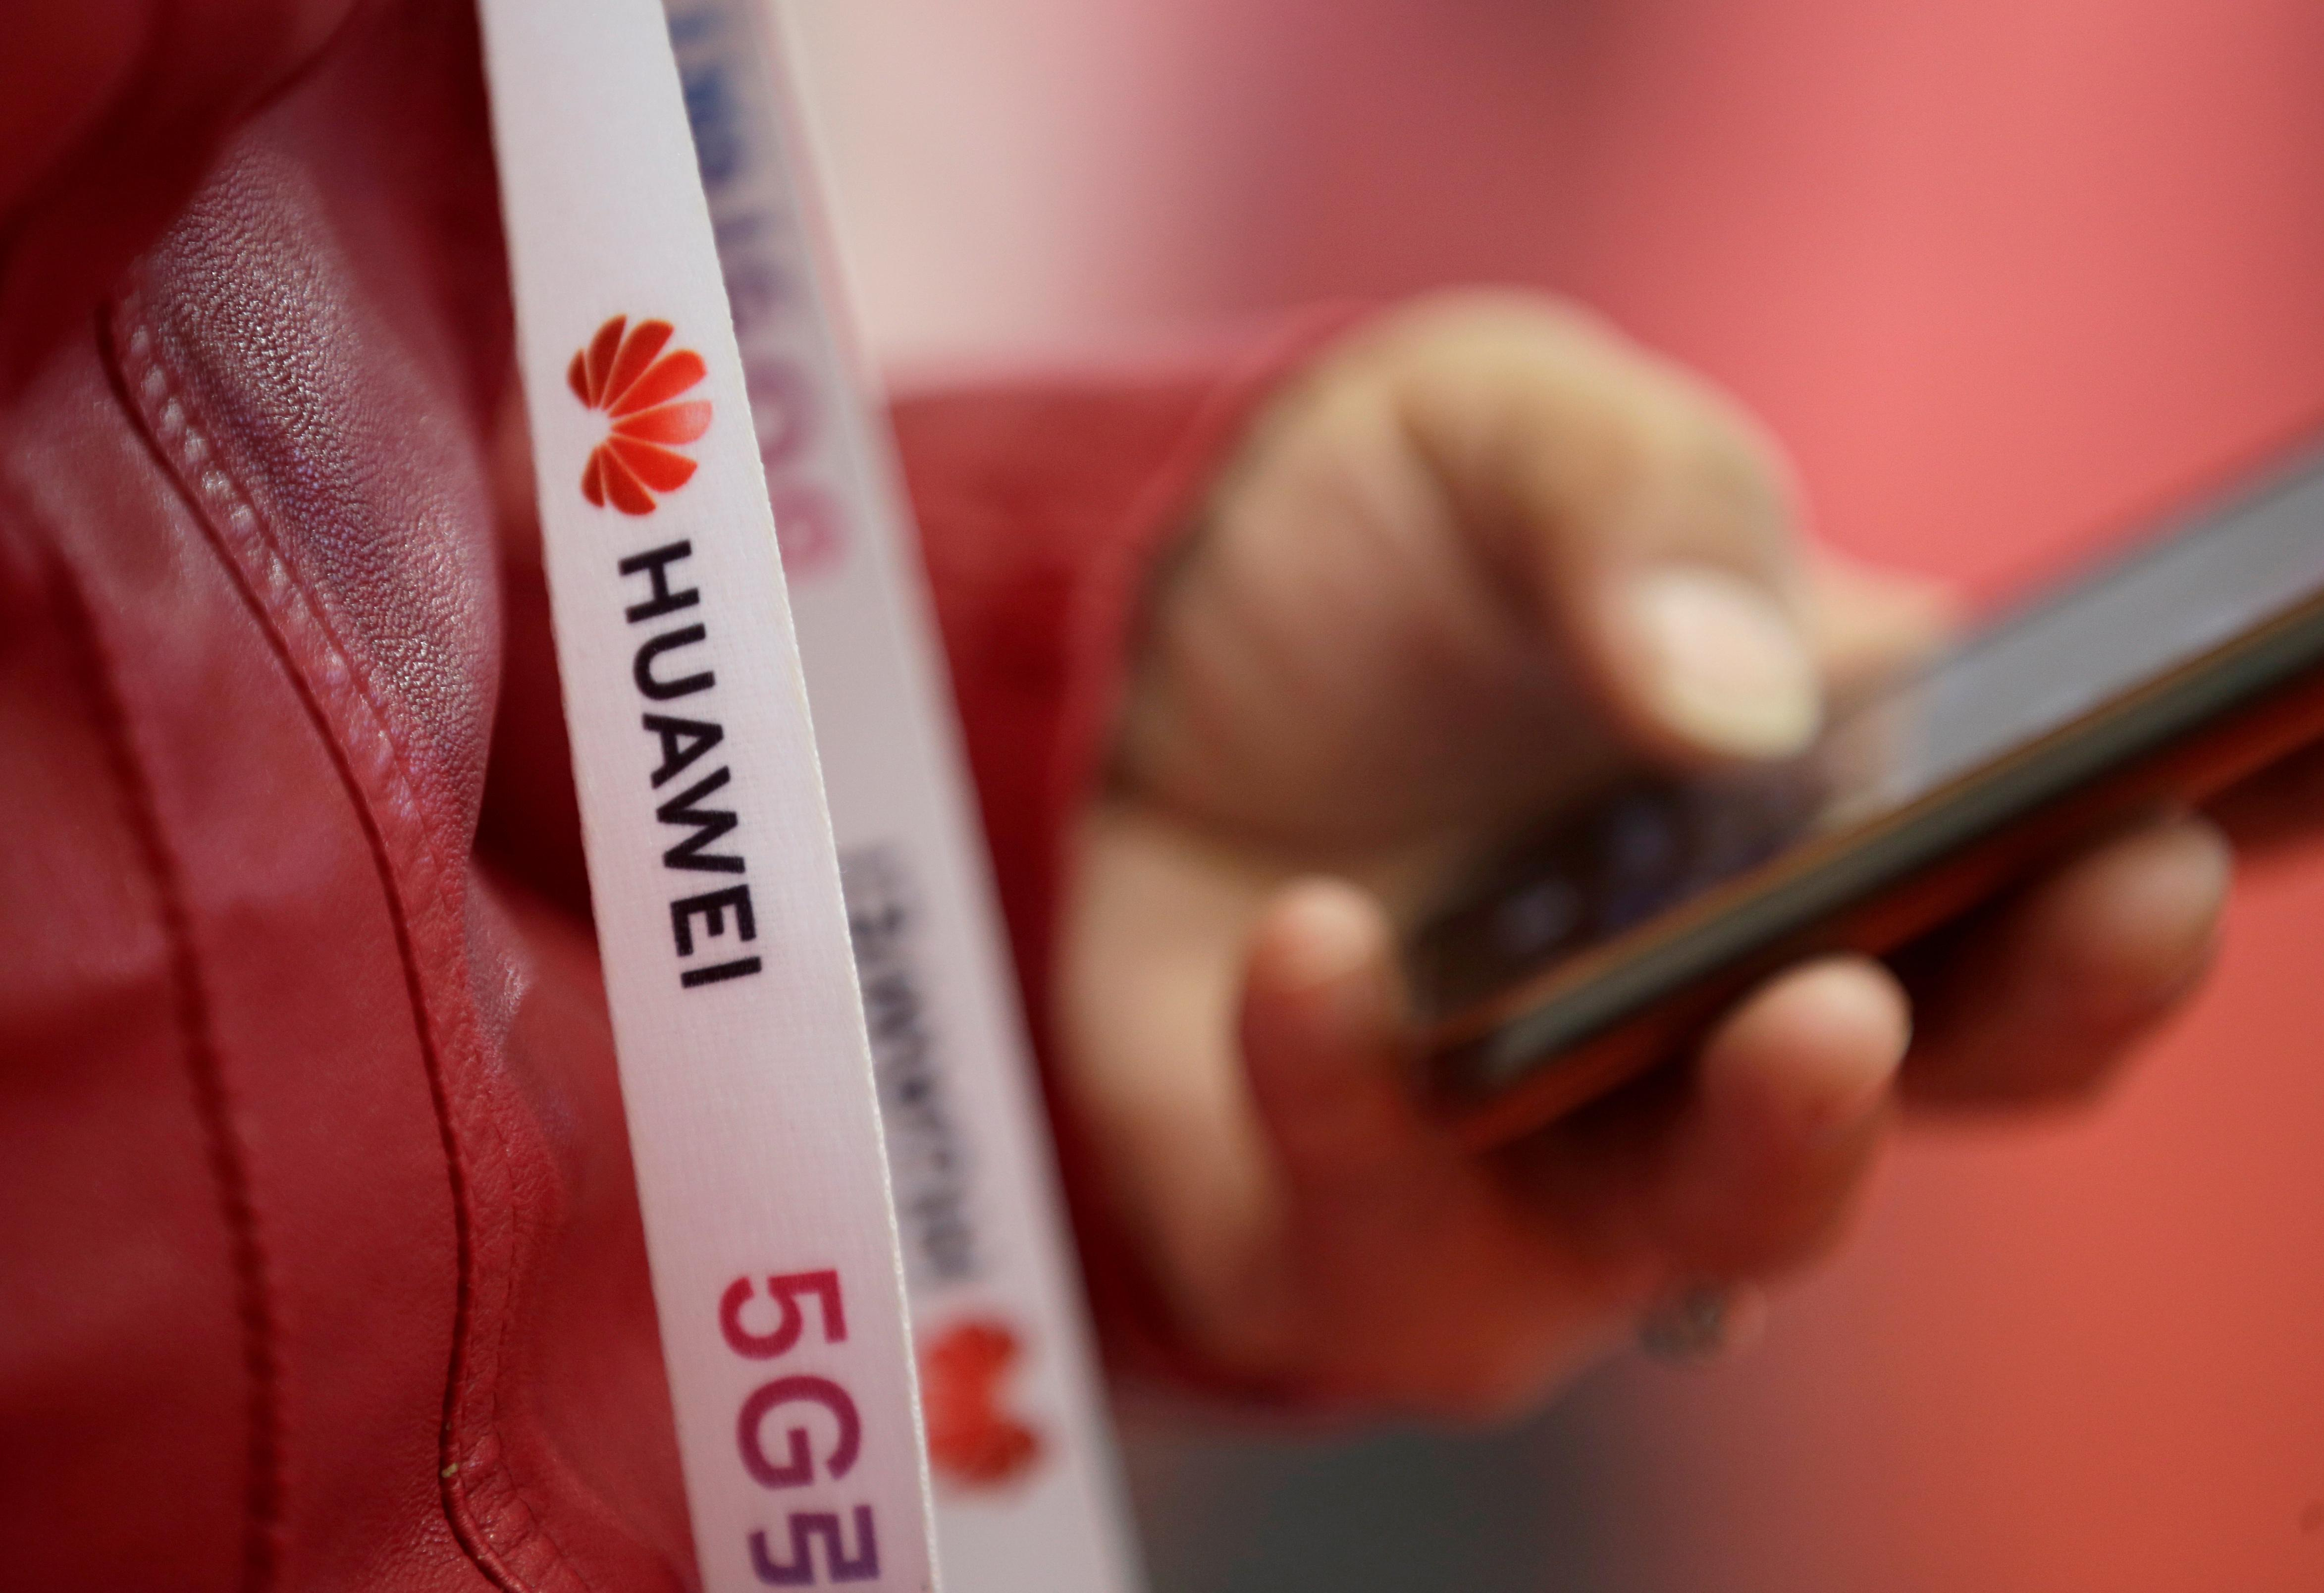 Britain's Johnson on Huawei: We want 5G but without hurting security